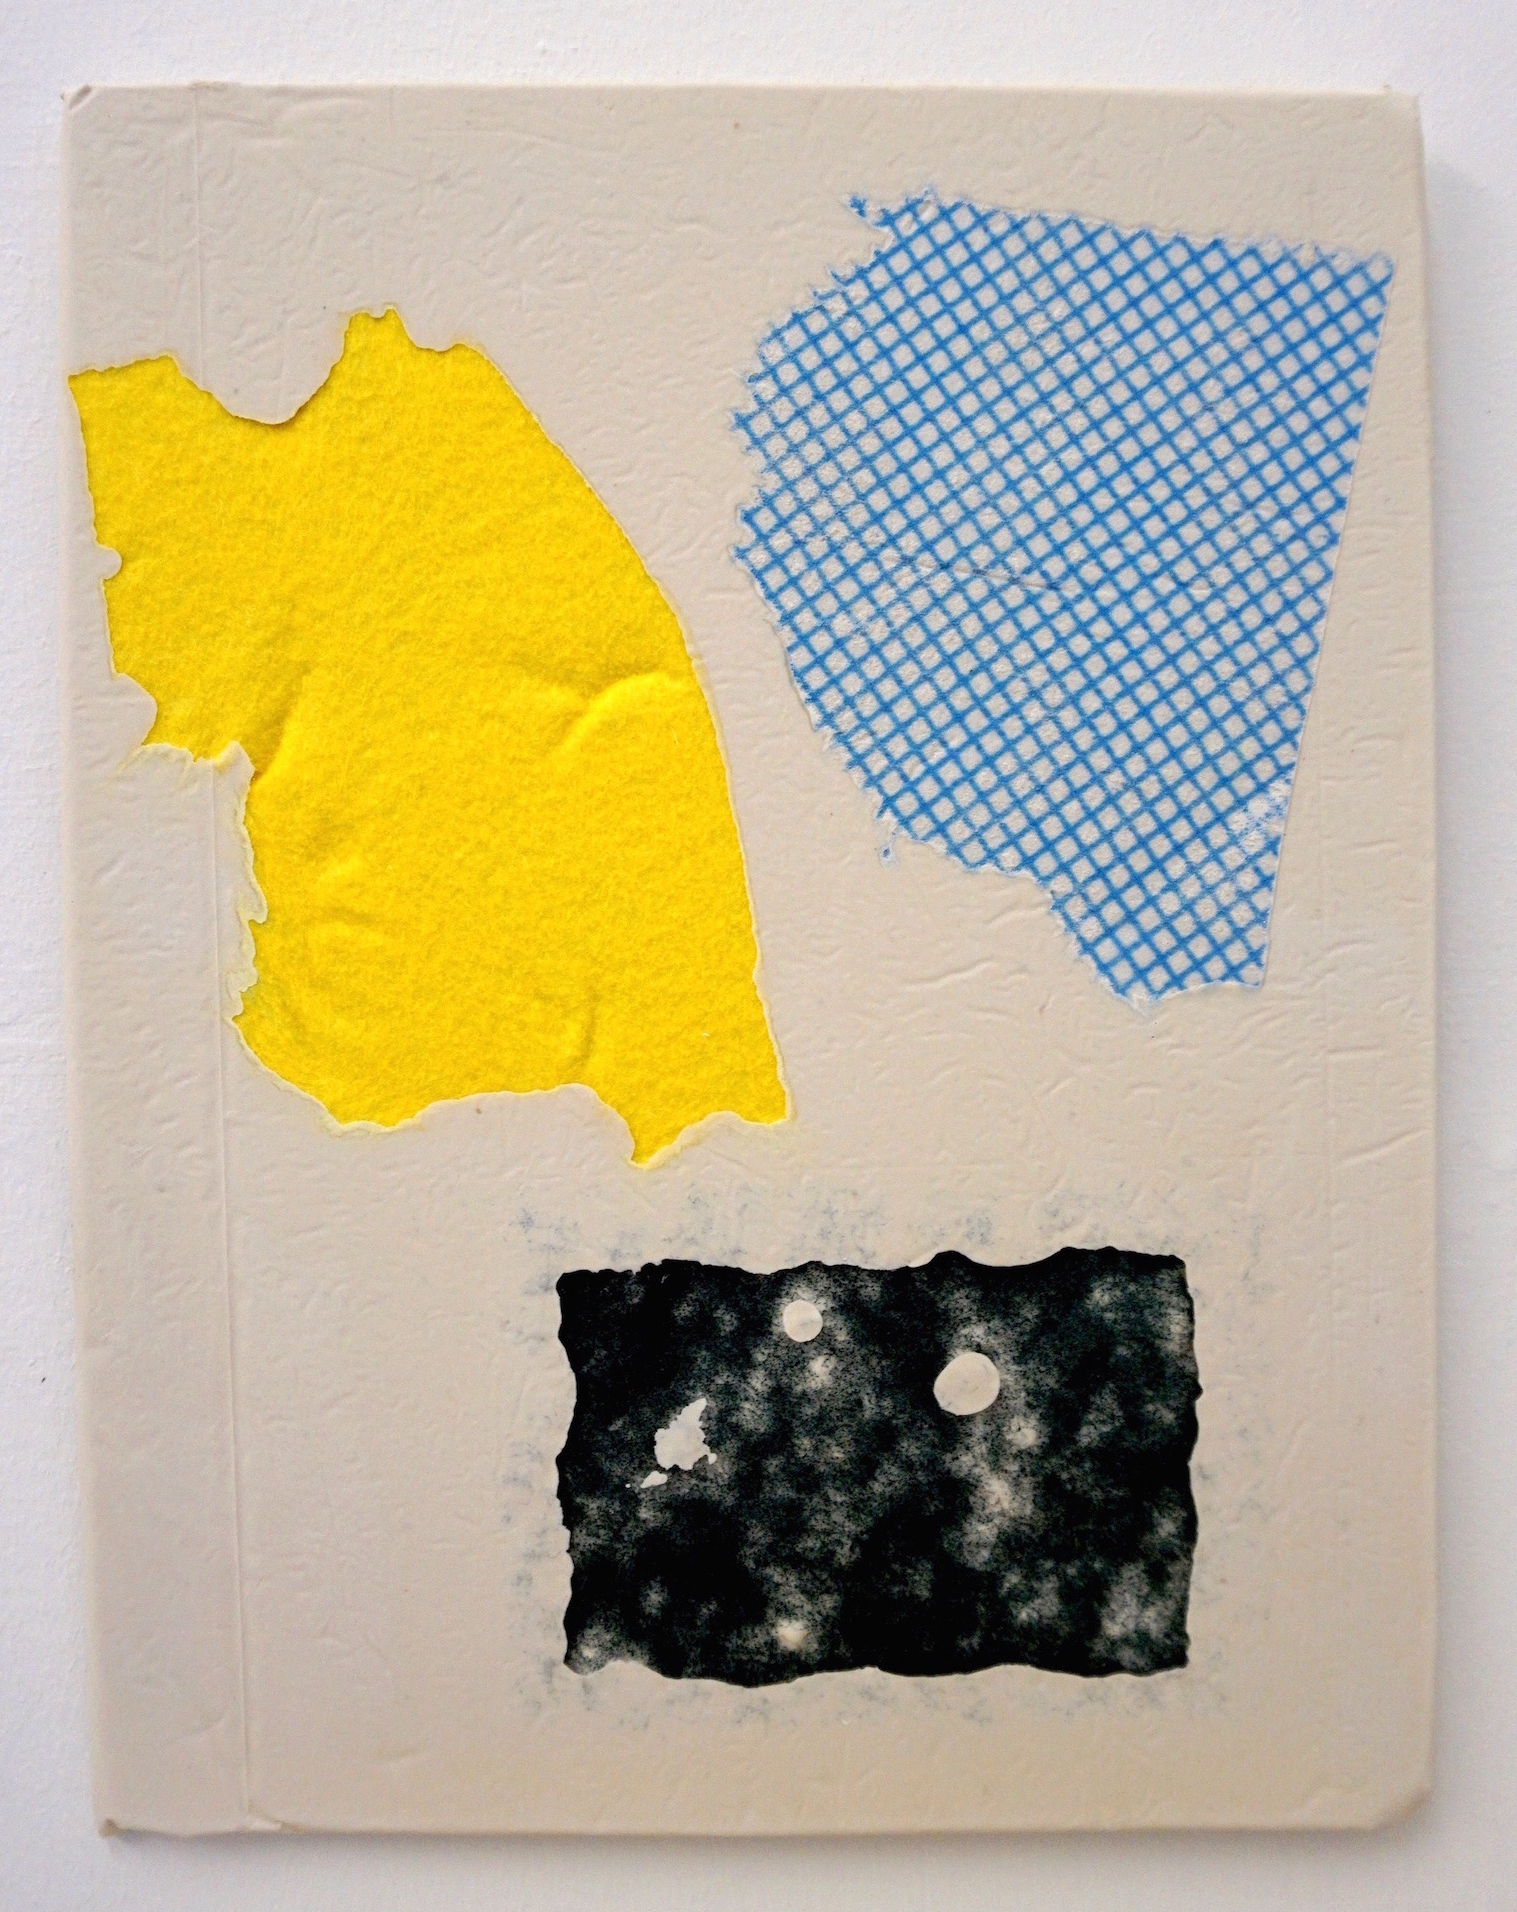 Domestic Bliss Fragment (yellow, blue, Green) | Composite, Mixed Media | 35 x 28 cm